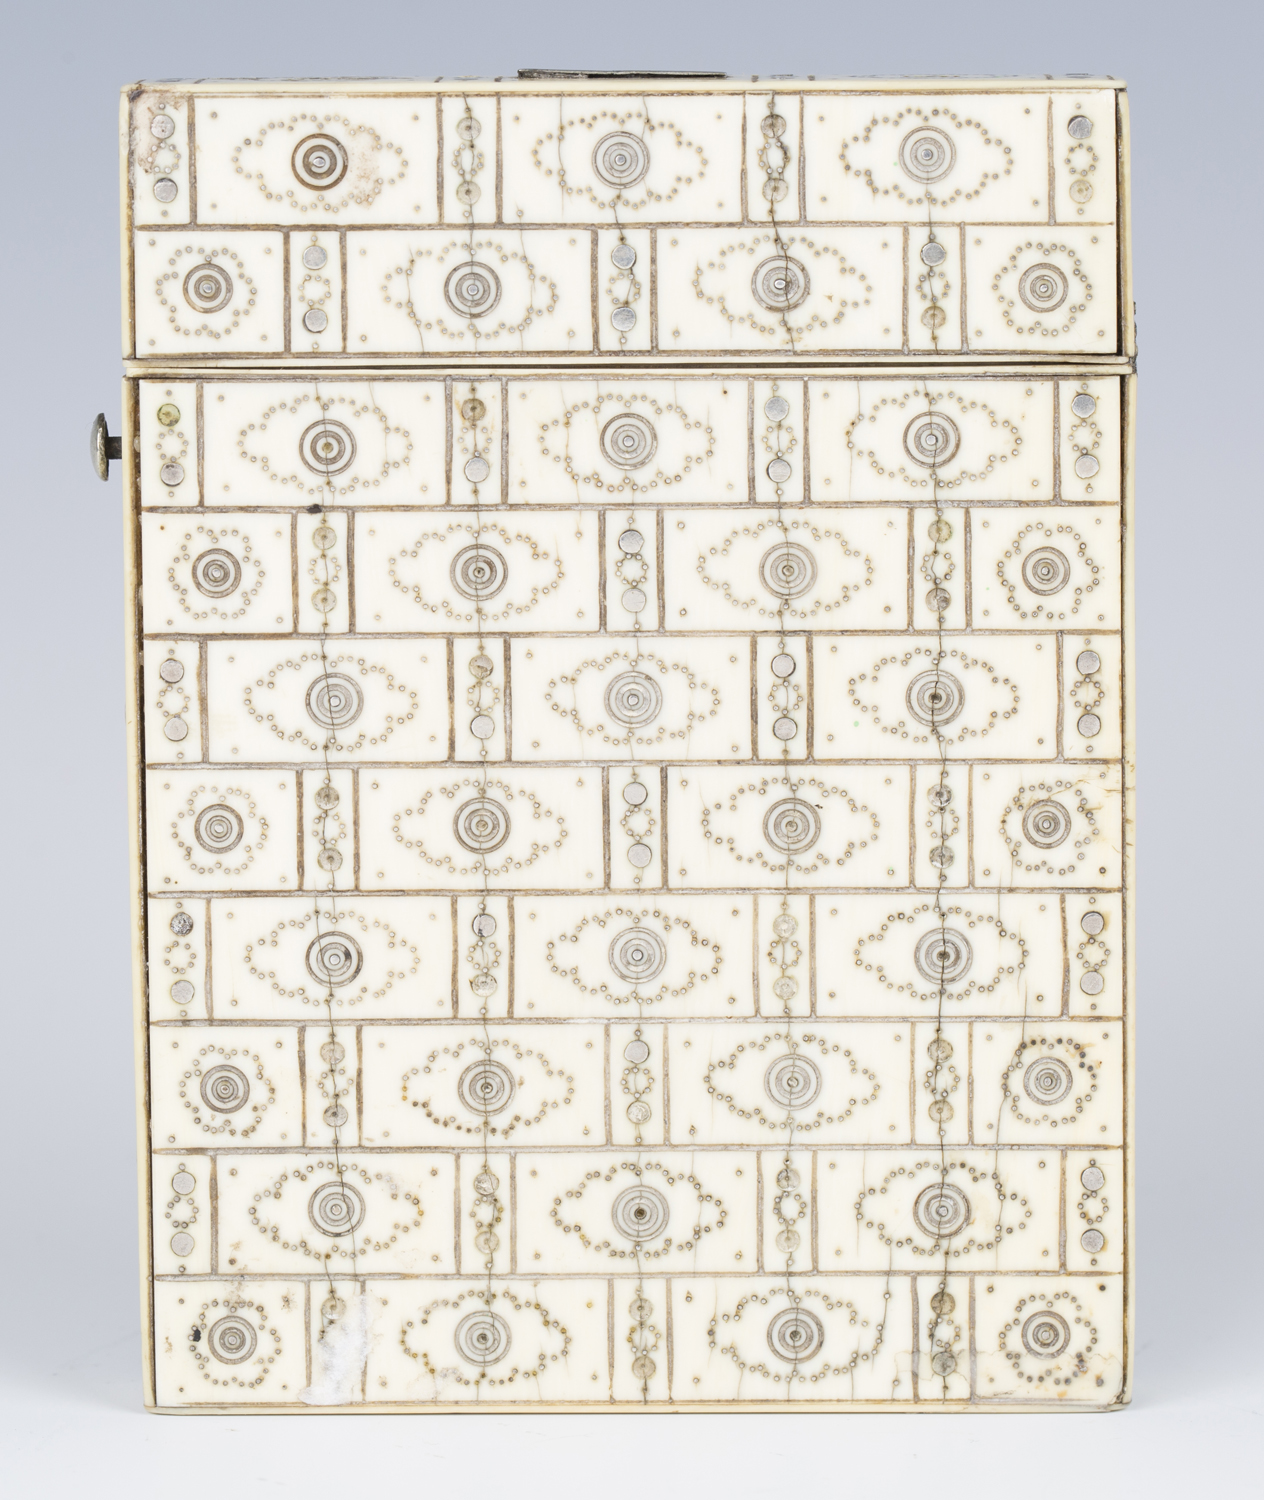 A 19th century ivory and piqué inlaid visiting card case, engraved with an overall brickwork effect, - Image 5 of 5